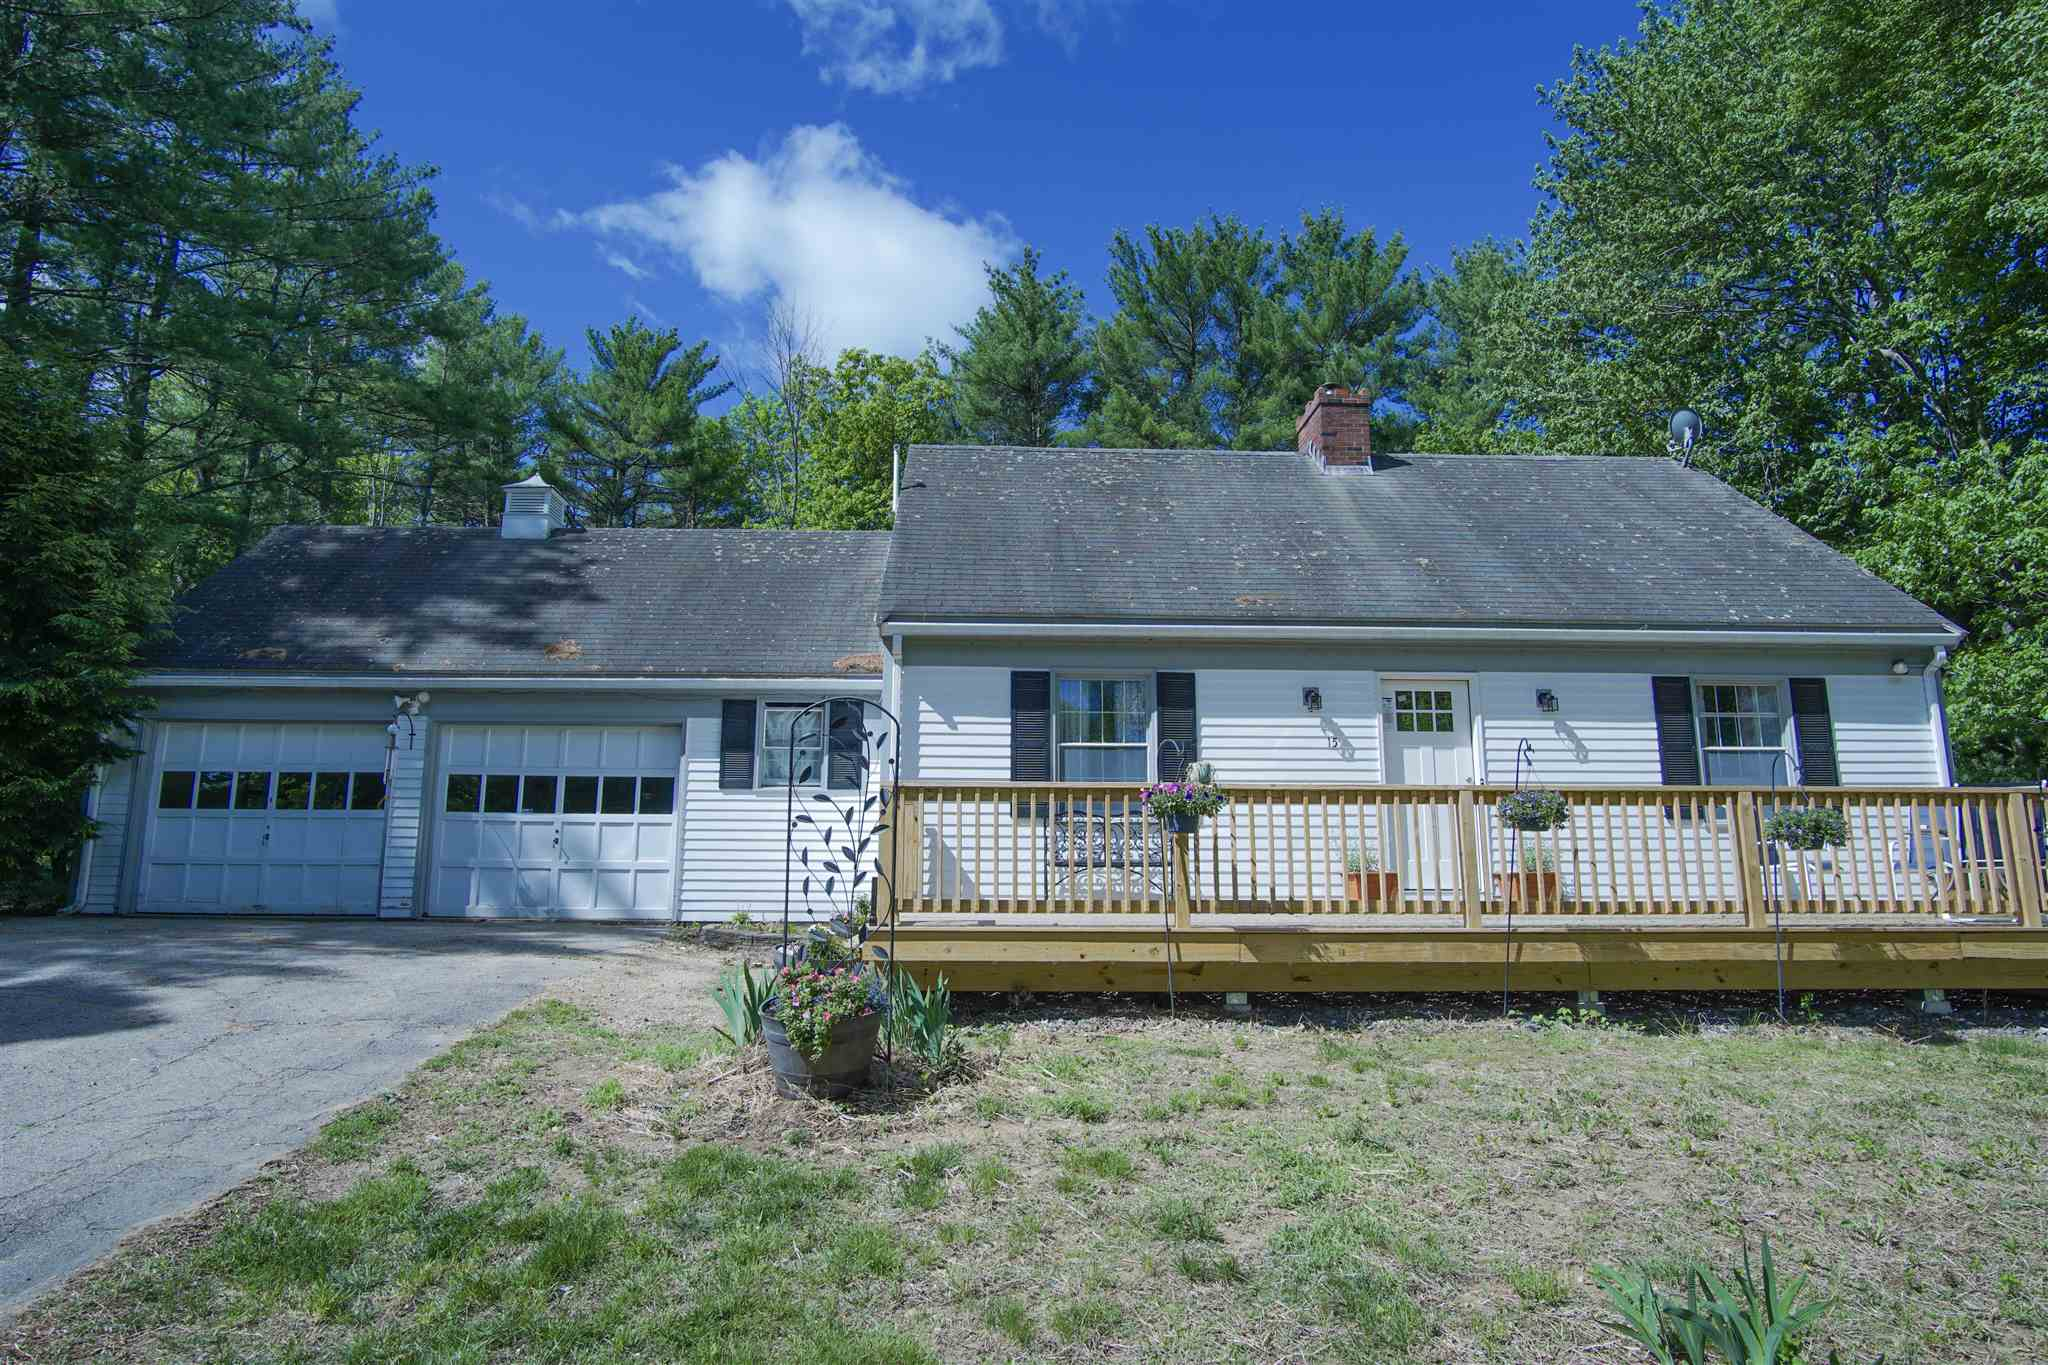 Photo of 15 Raymond Road Deerfield NH 03037